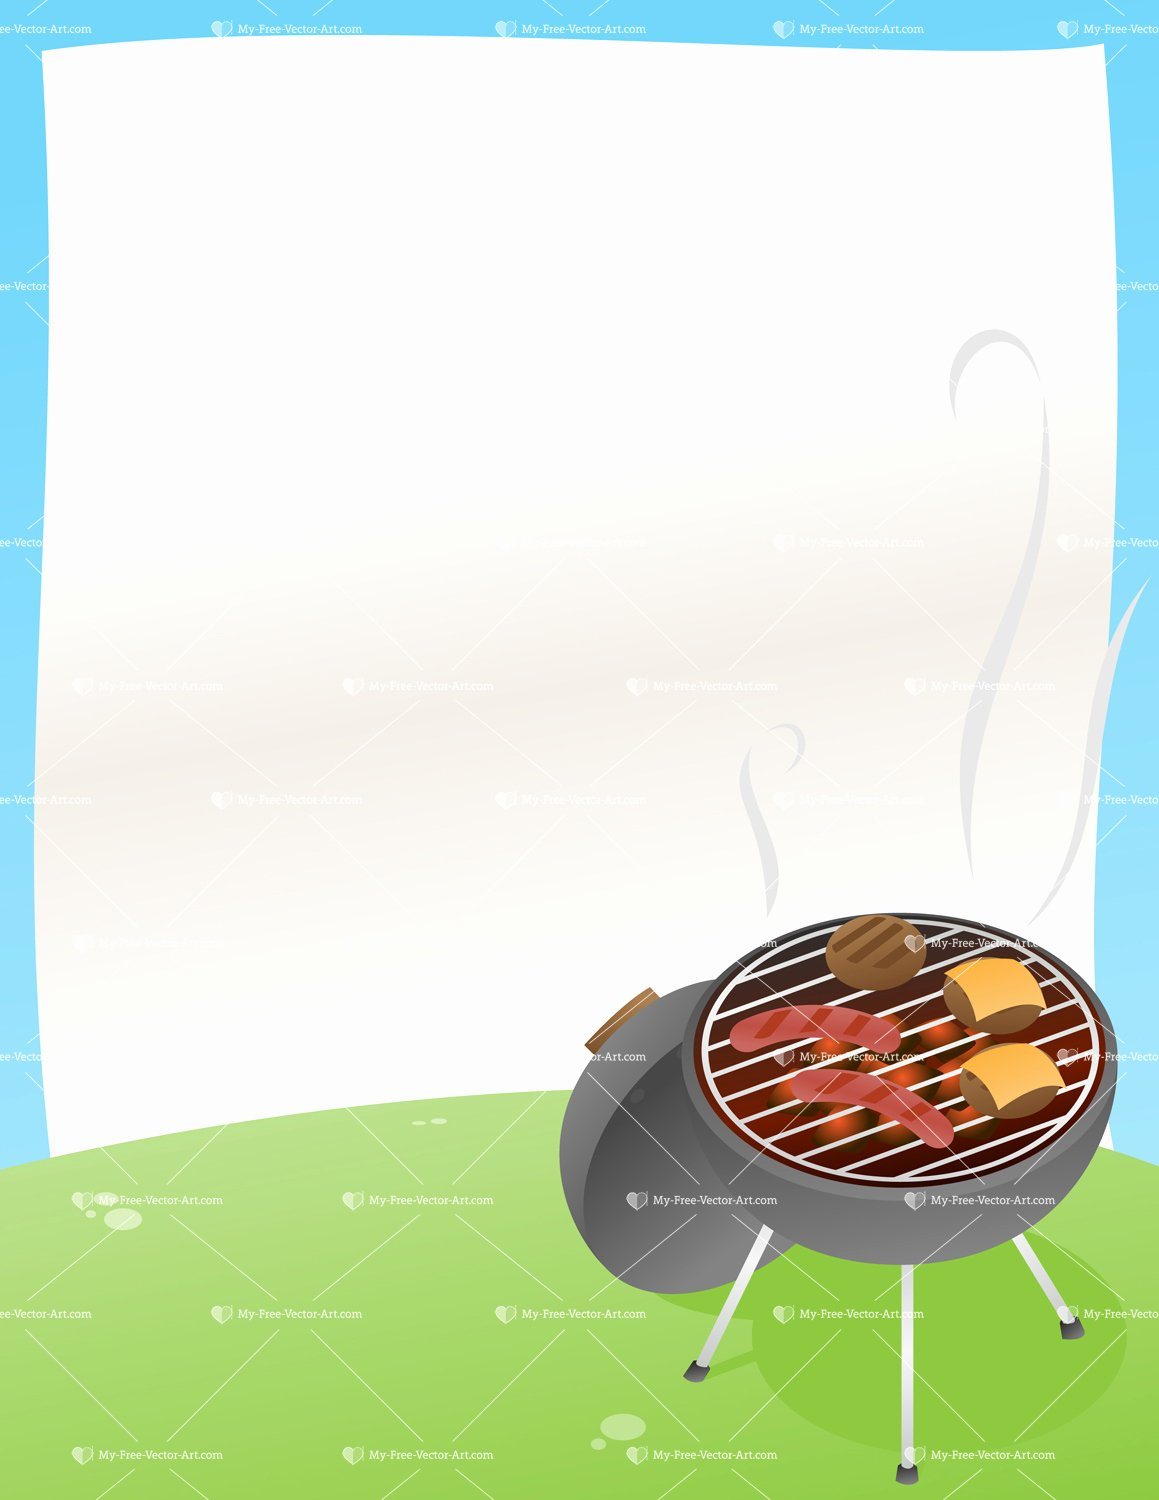 Barbeque Flyer Templates Free Awesome Bbq Announcement — Vector Illustration Of A Bbq Grill with A Background Ready for Your Own